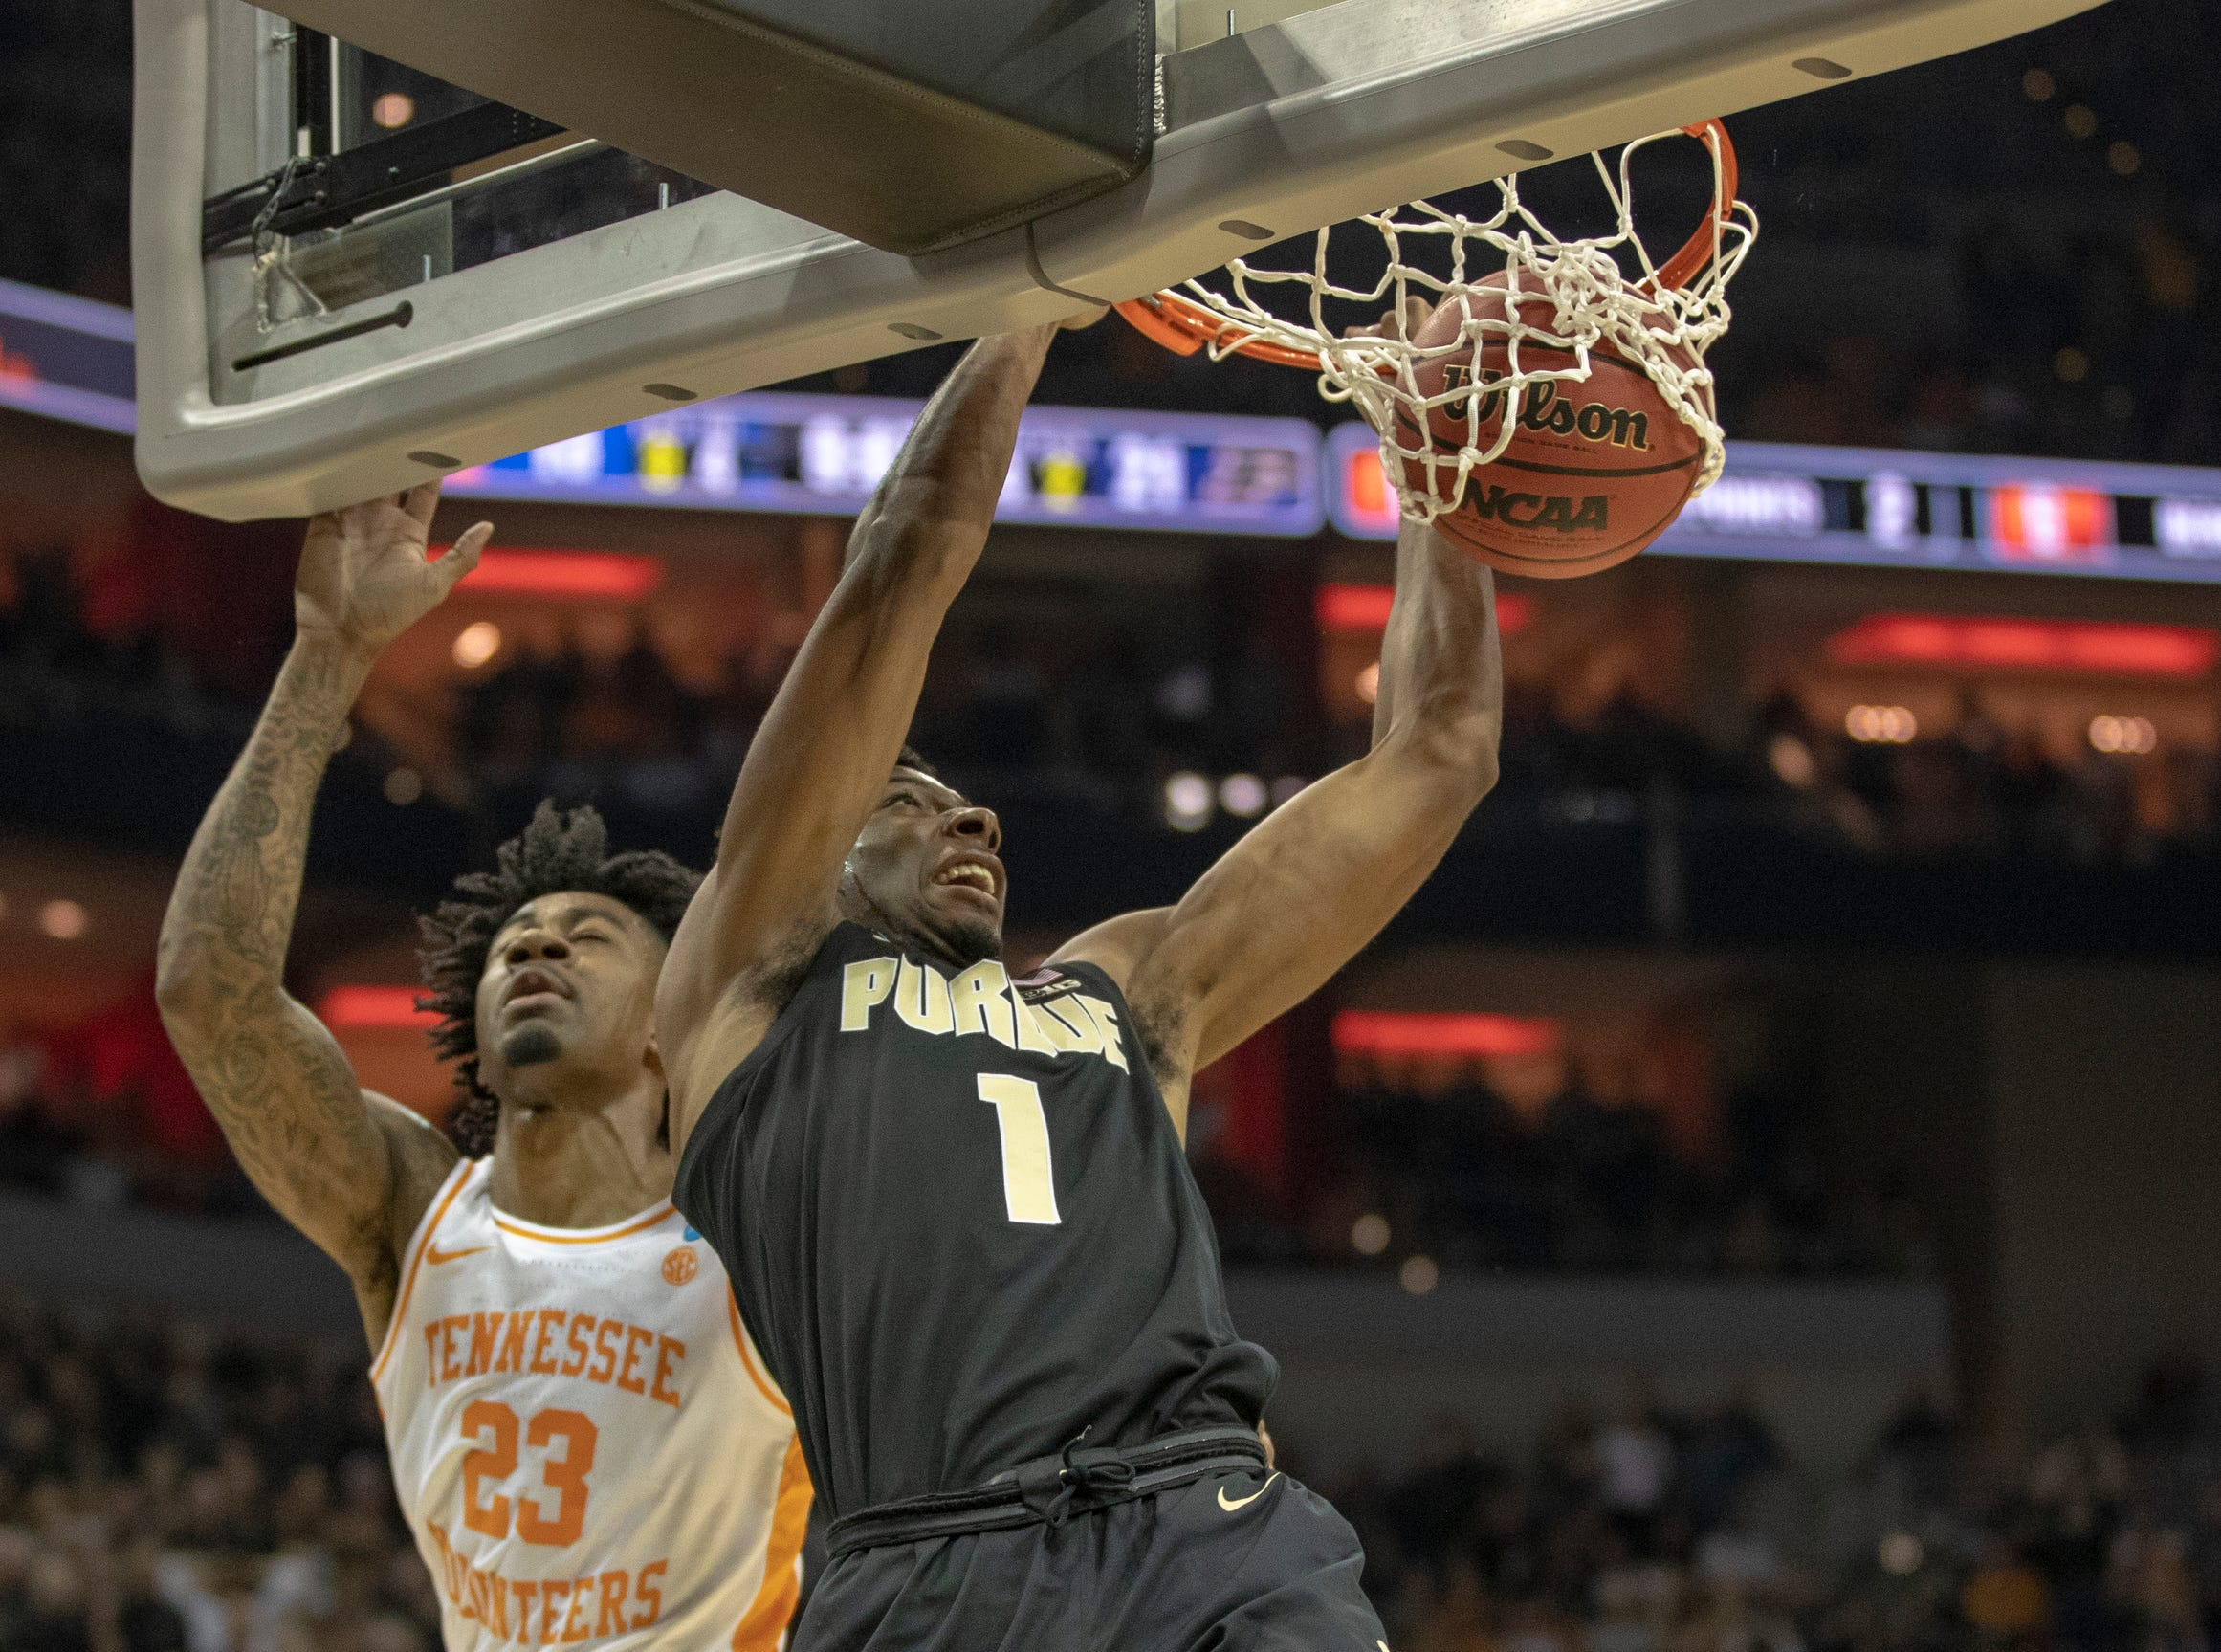 Aaron Wheeler of the Purdue Boilermakers dunks on Jordan Bowden of the Tennessee Volunteers during first half action, NCAA Division 1 Men's Basketball 'Sweet Sixteen' game, KFC Yum Center, Louisville, Thursday, March 28, 2019.